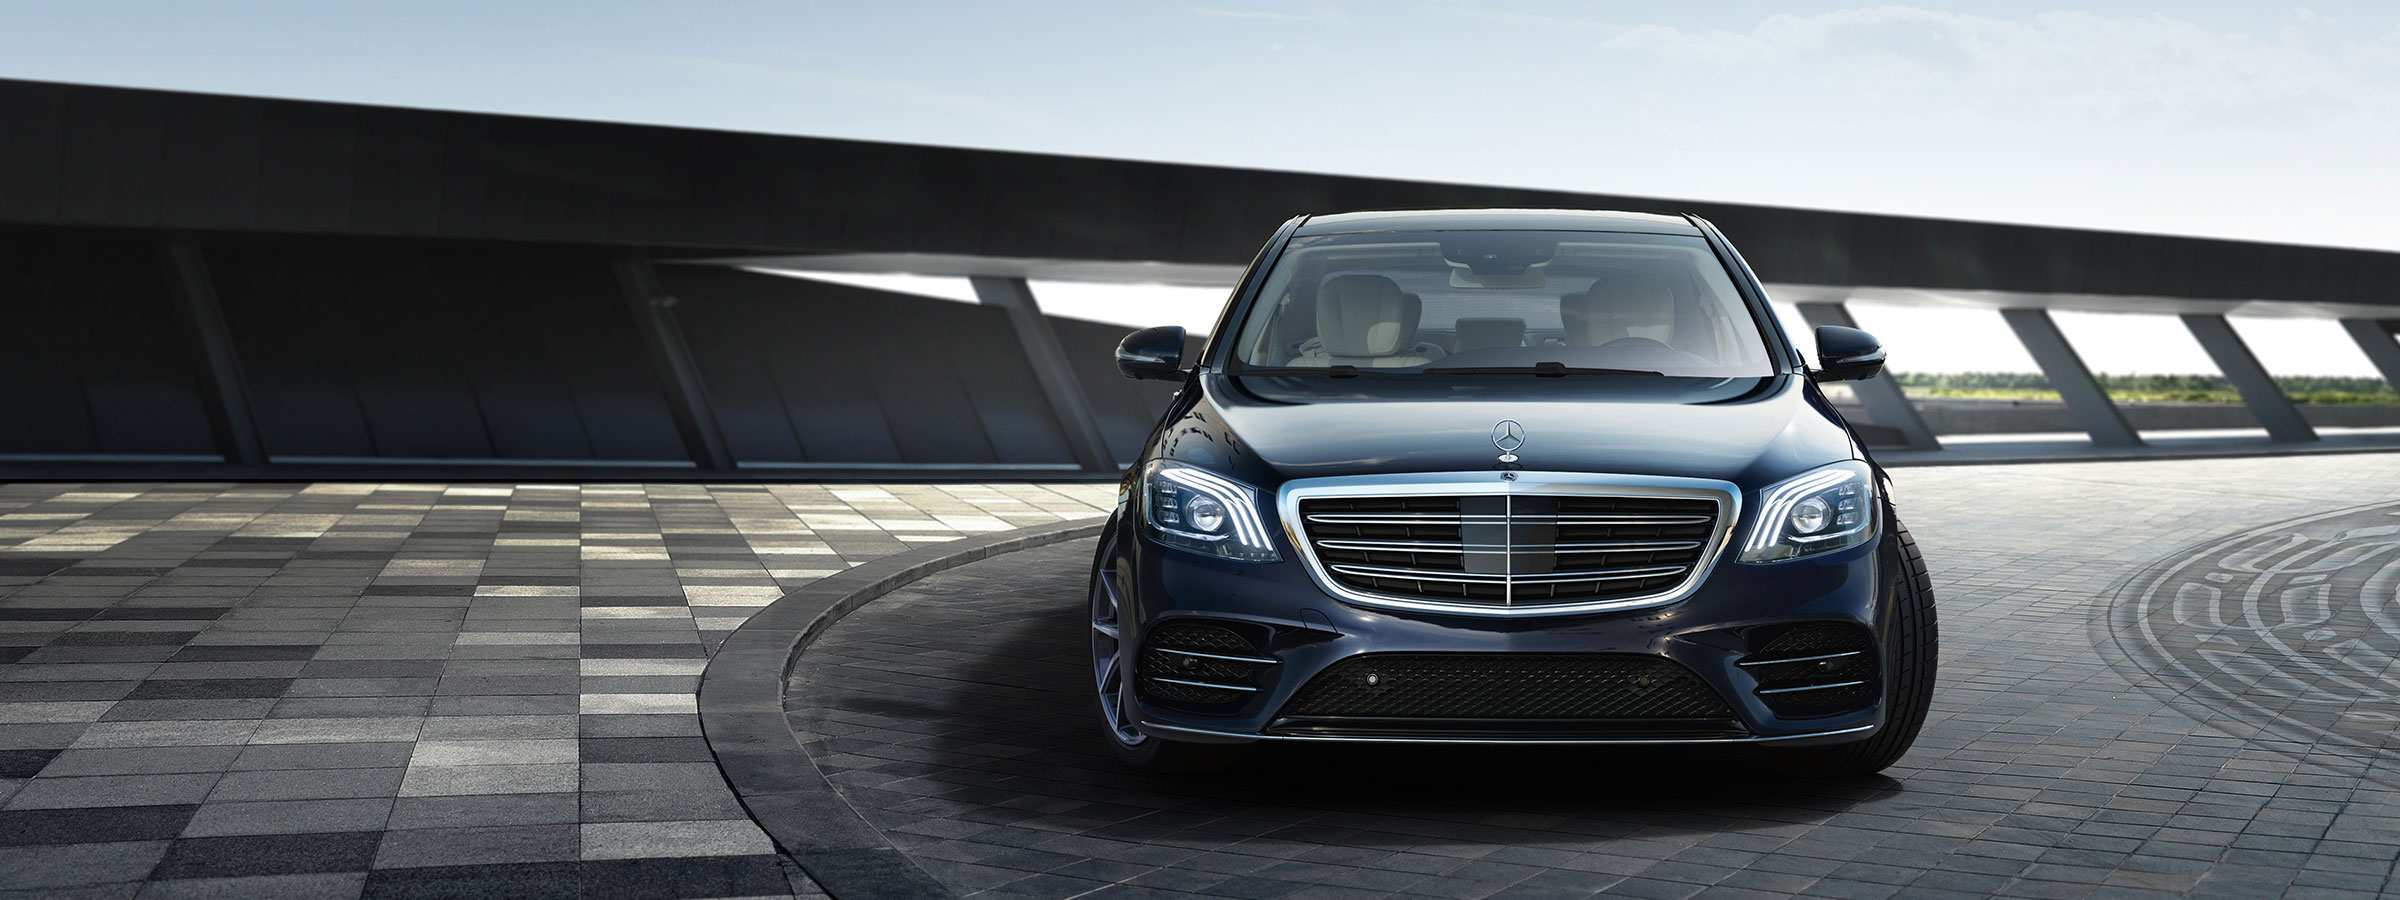 41 New 2019 Mercedes Benz S Class Prices